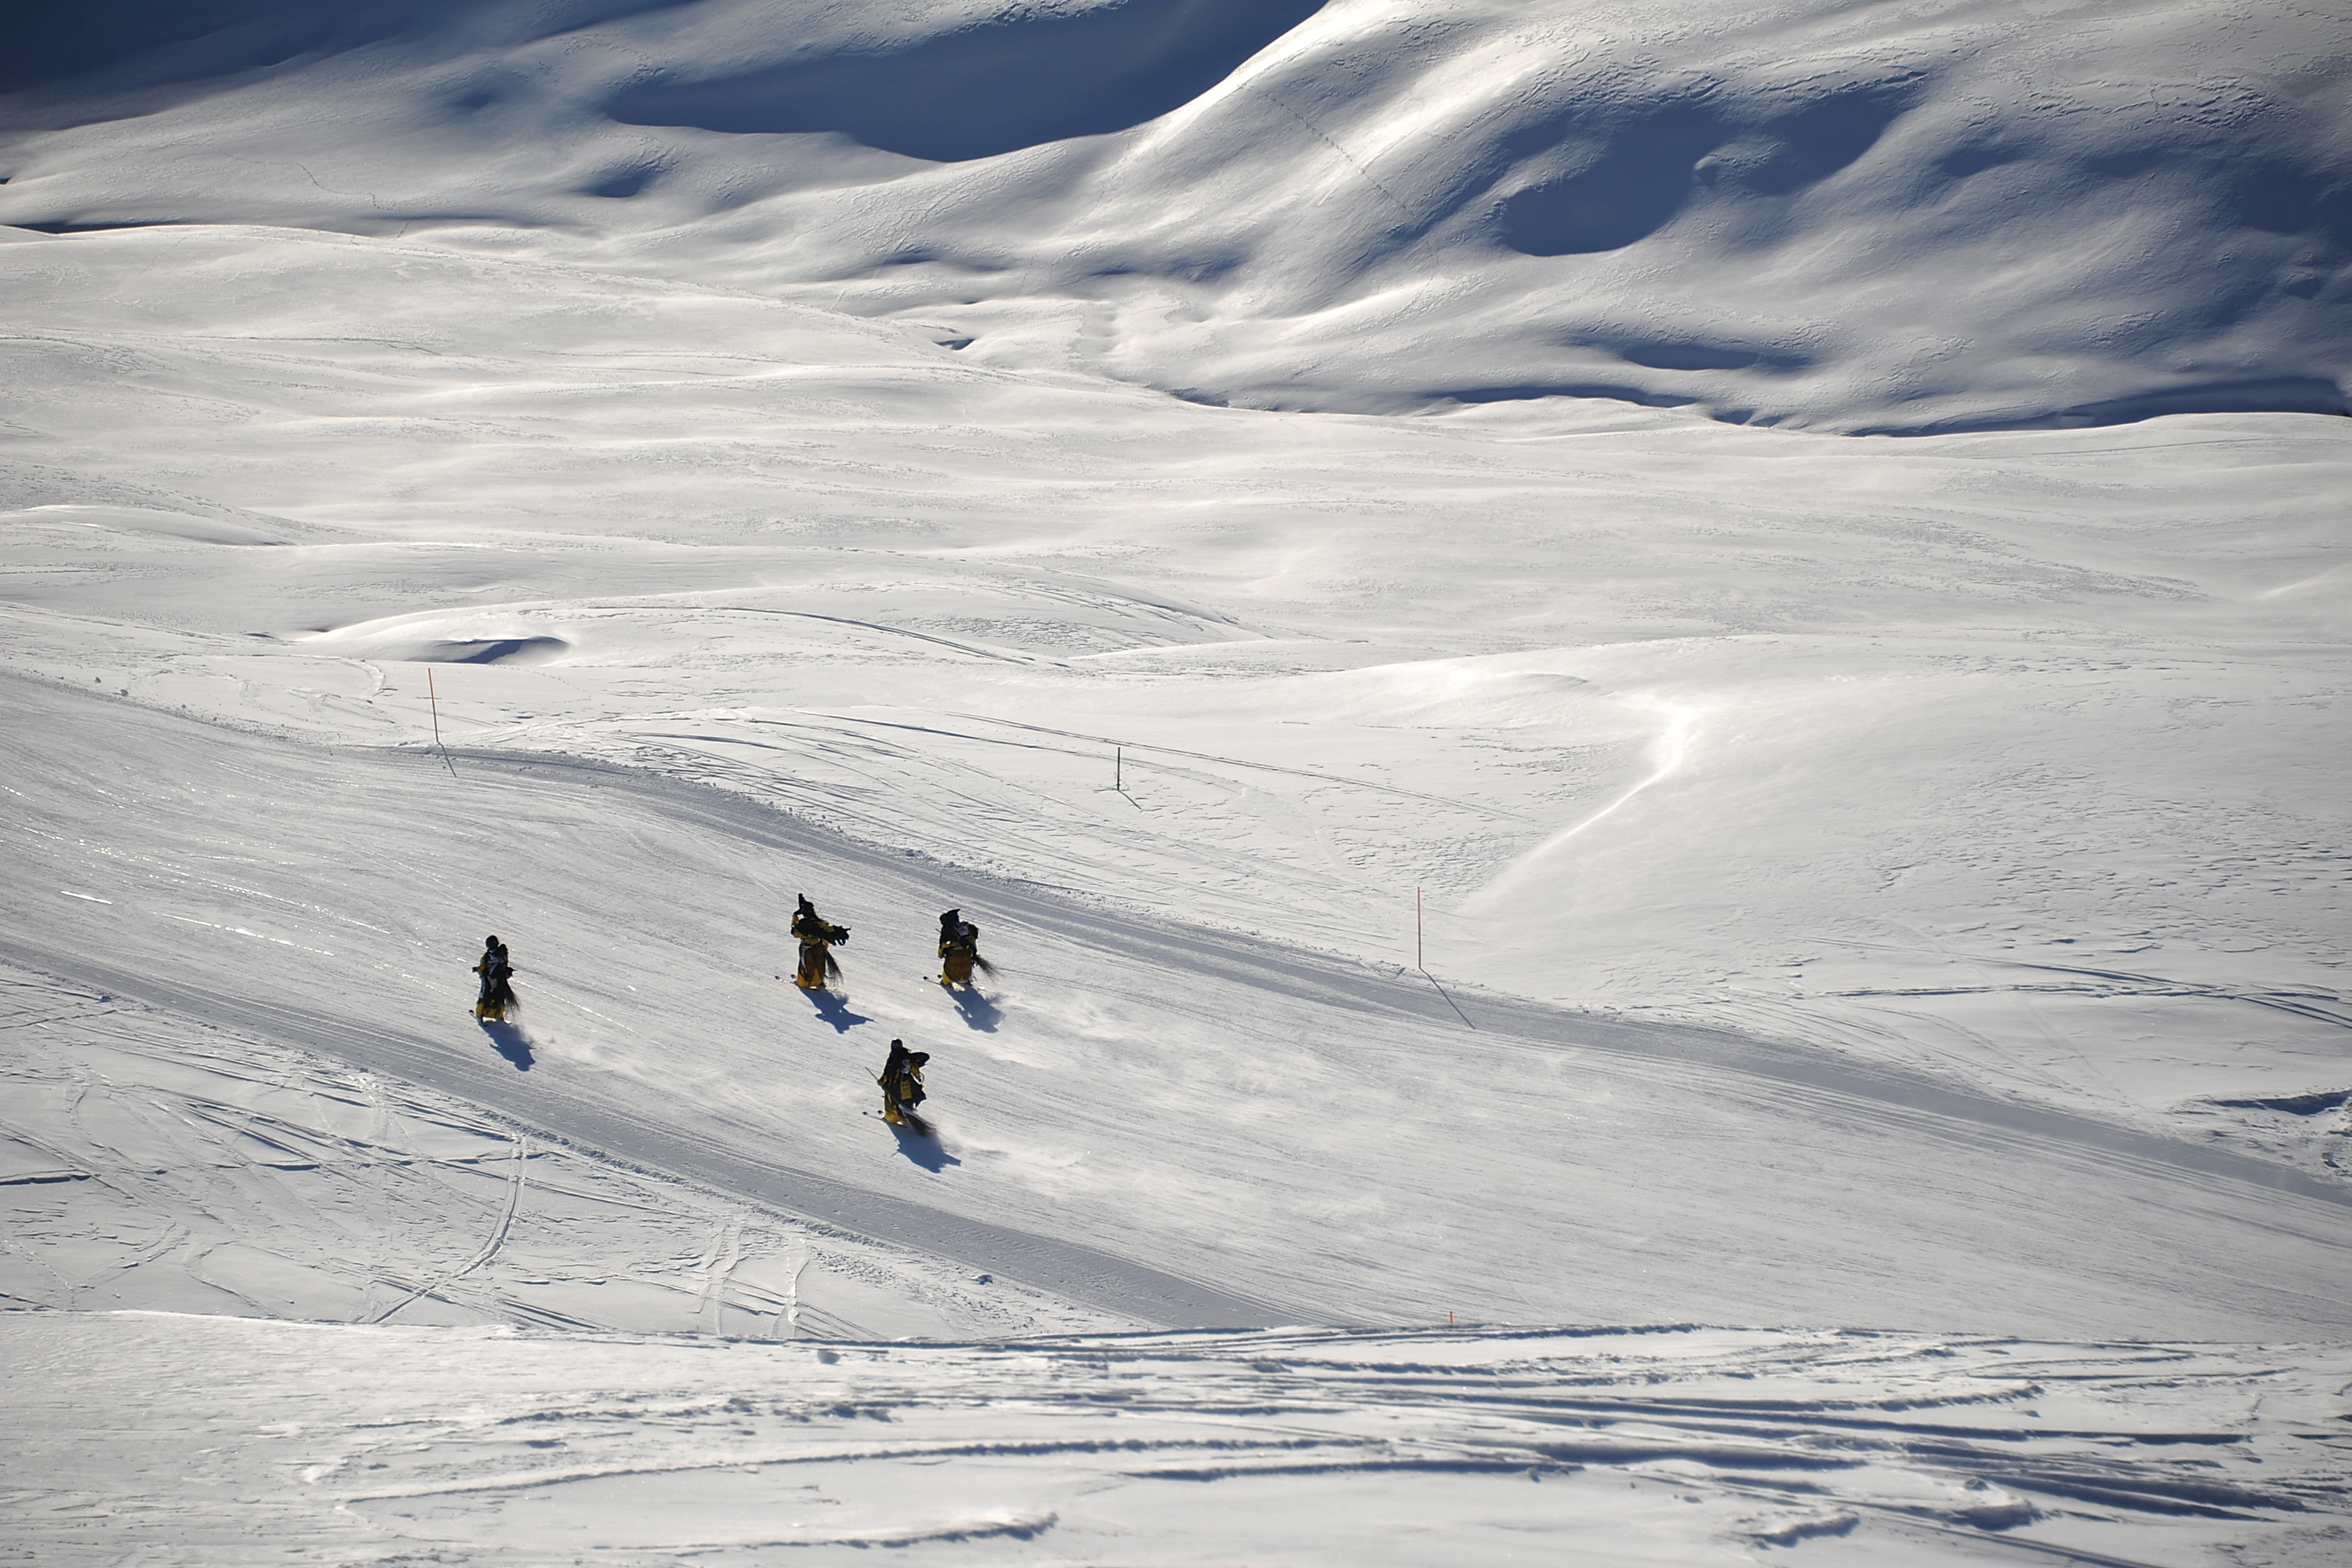 Belalp Witches Ski Race